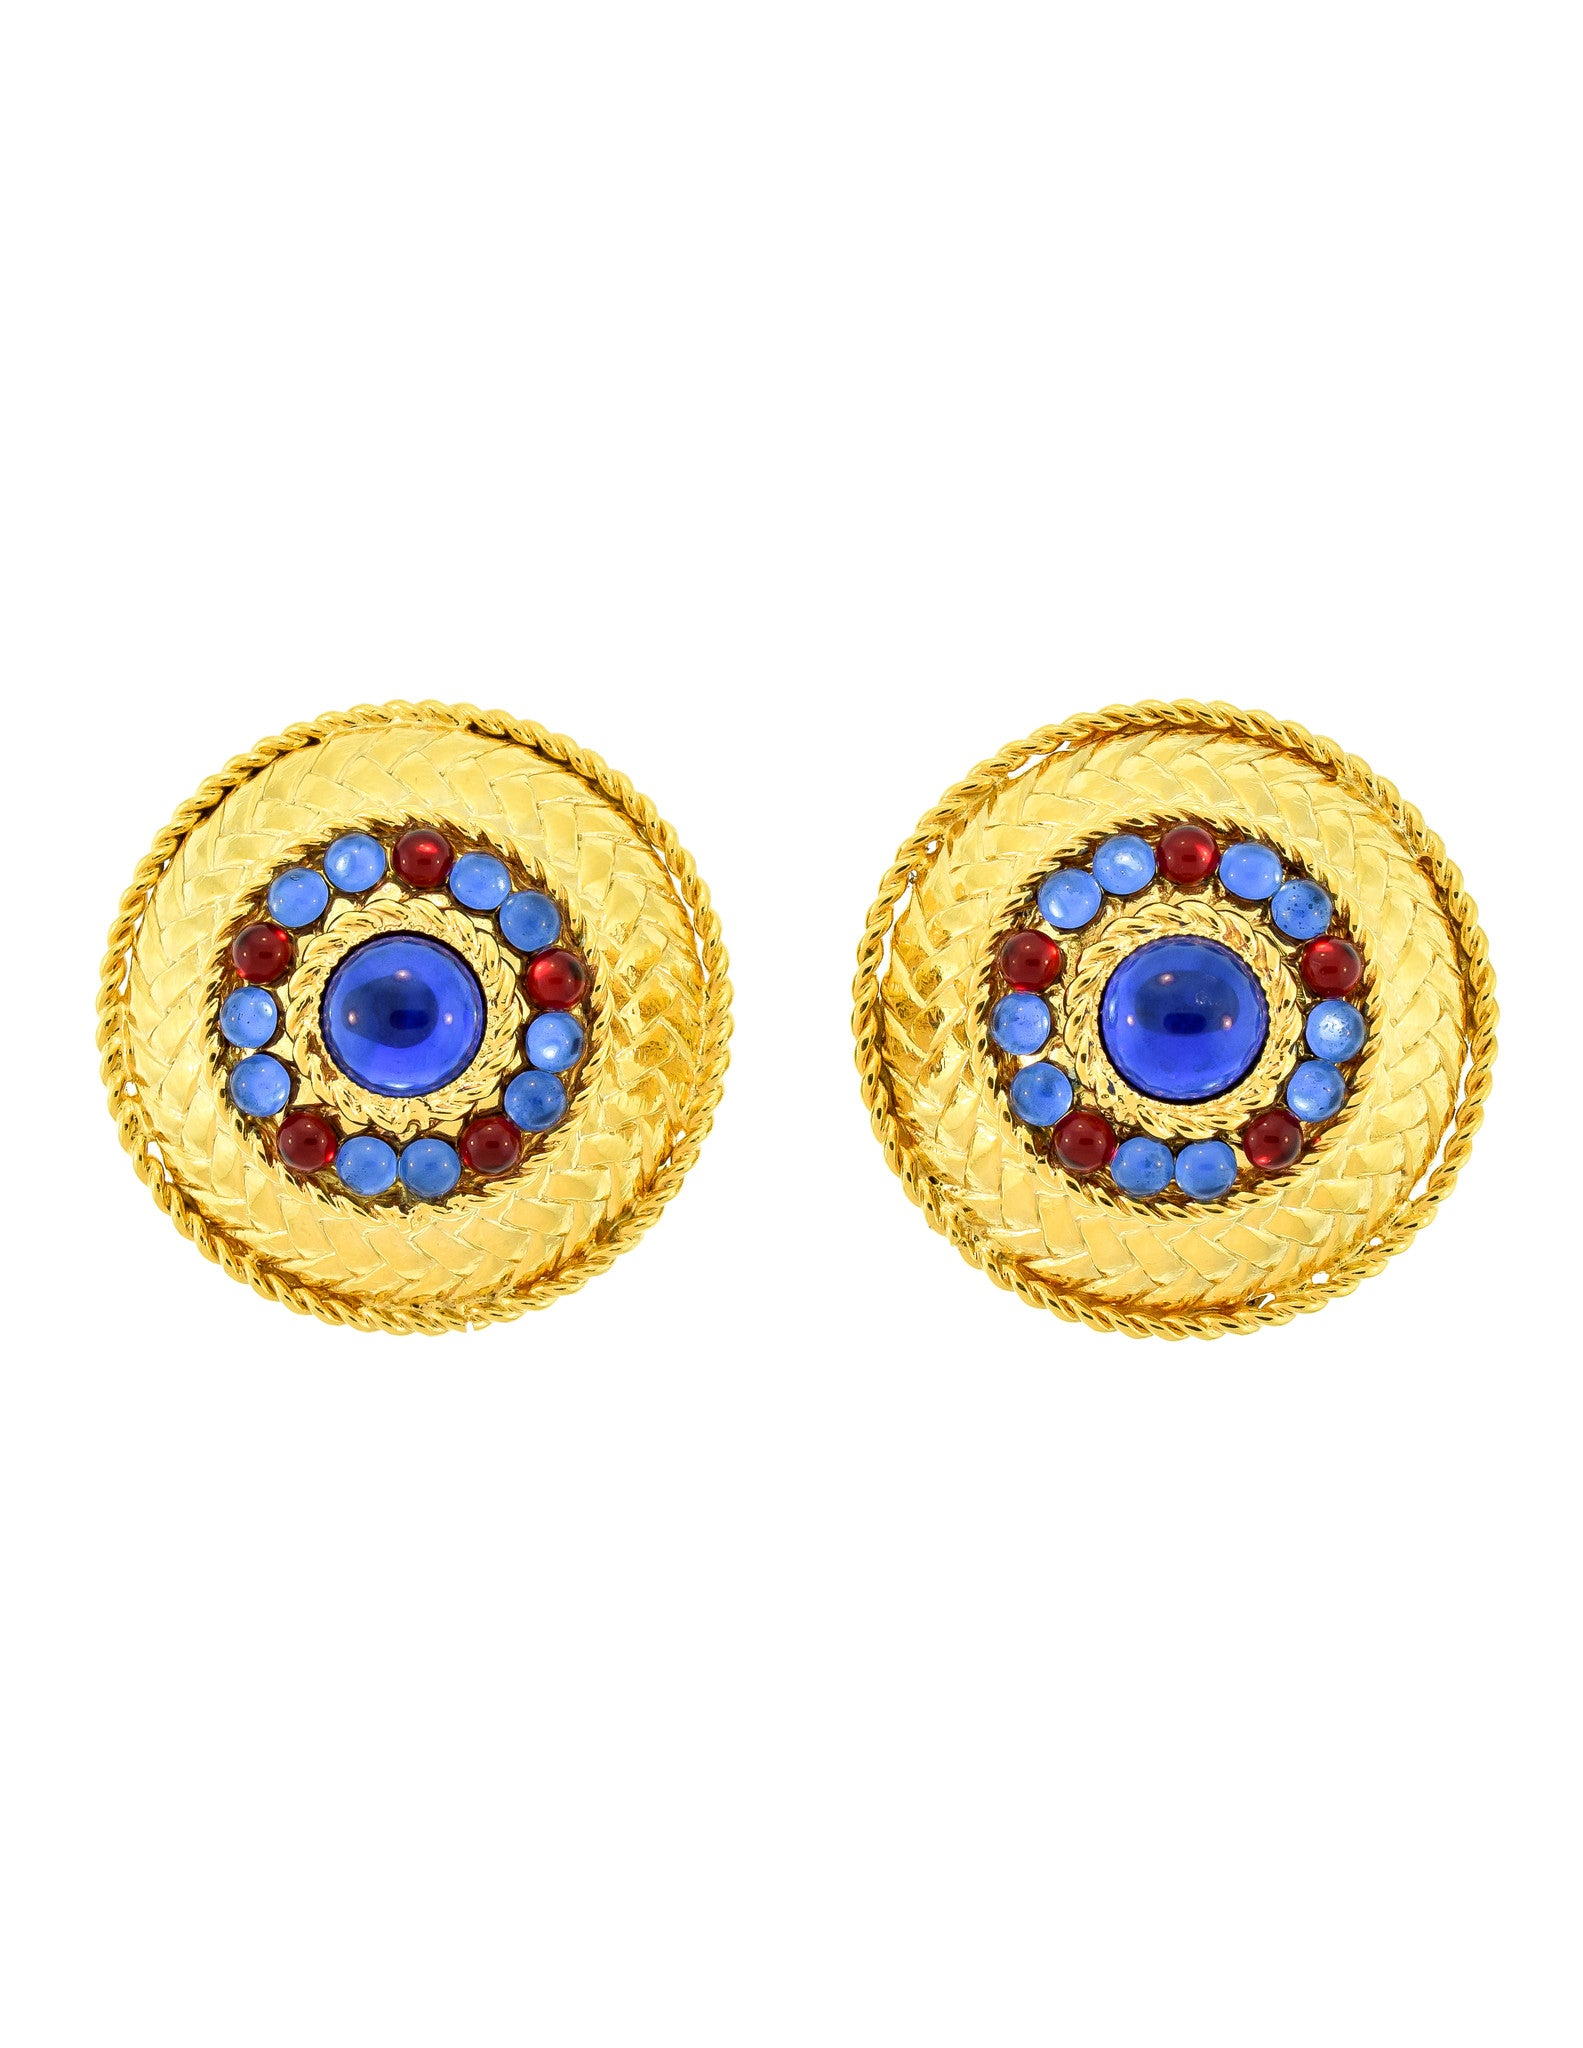 Gianfranco Ferré Vintage Gold Blue & Red Rhinestone Earrings - Amarcord Vintage Fashion  - 1